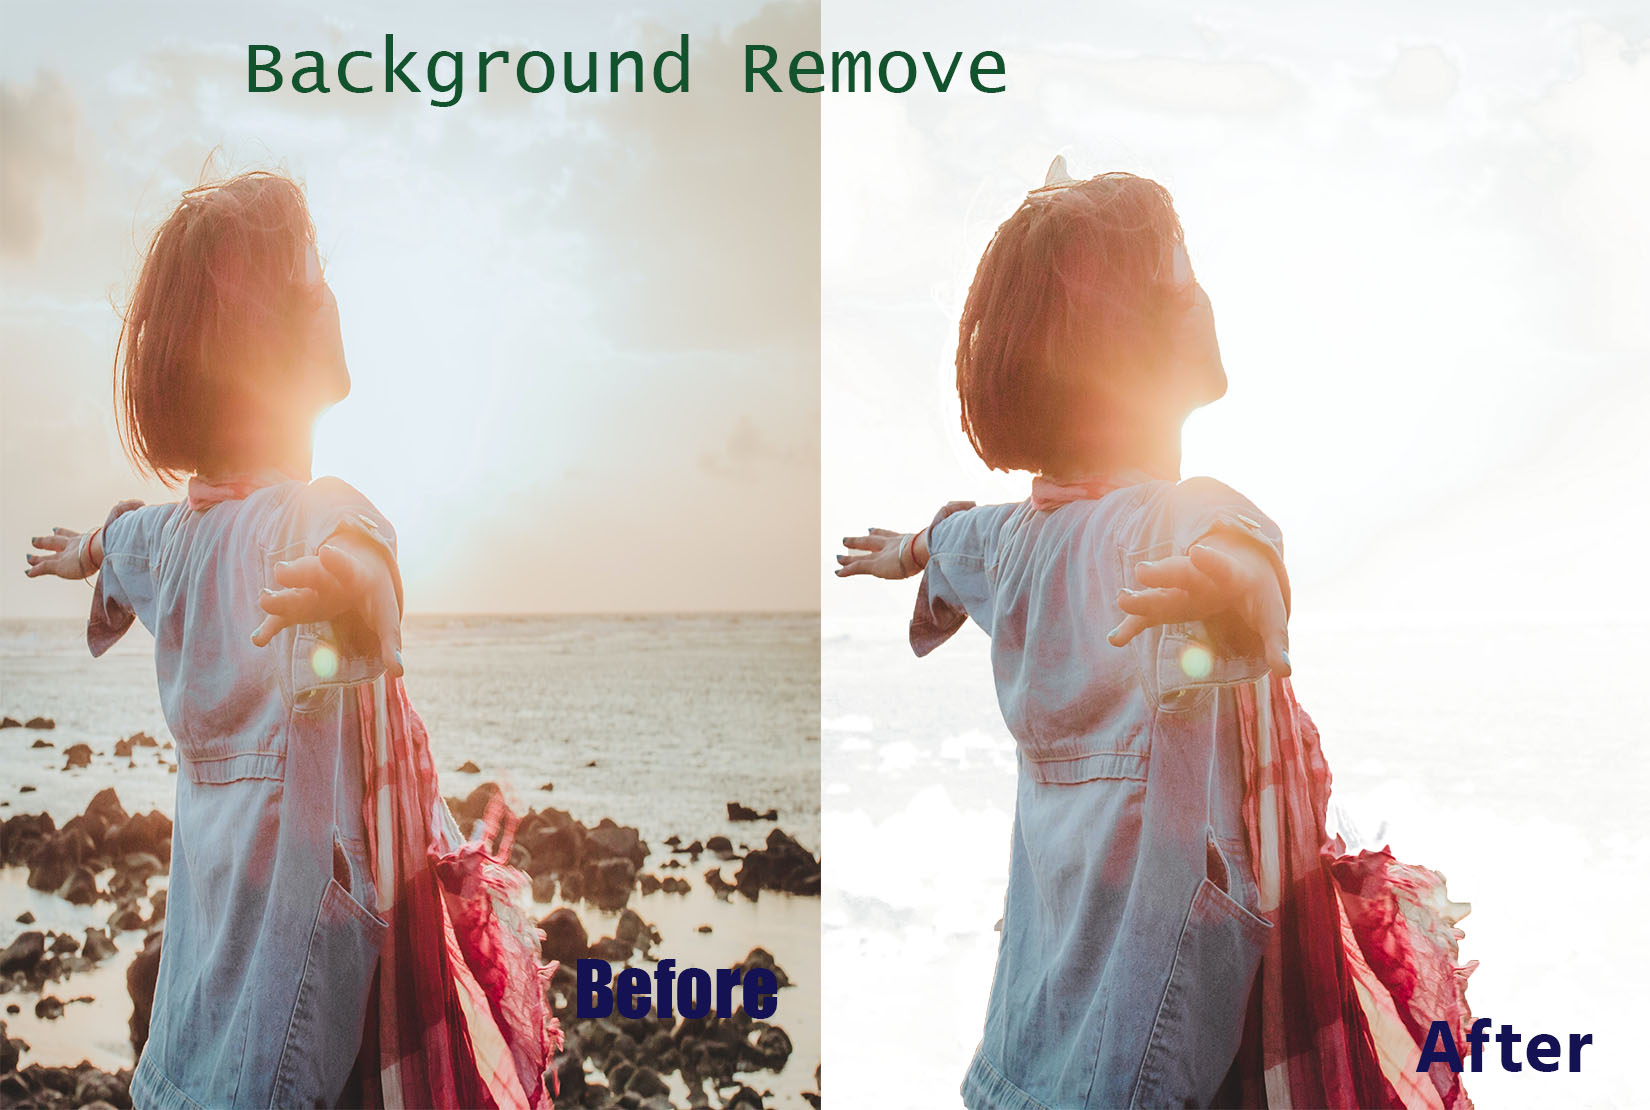 I will do any photoshop editing,  background remove and retouching professional.